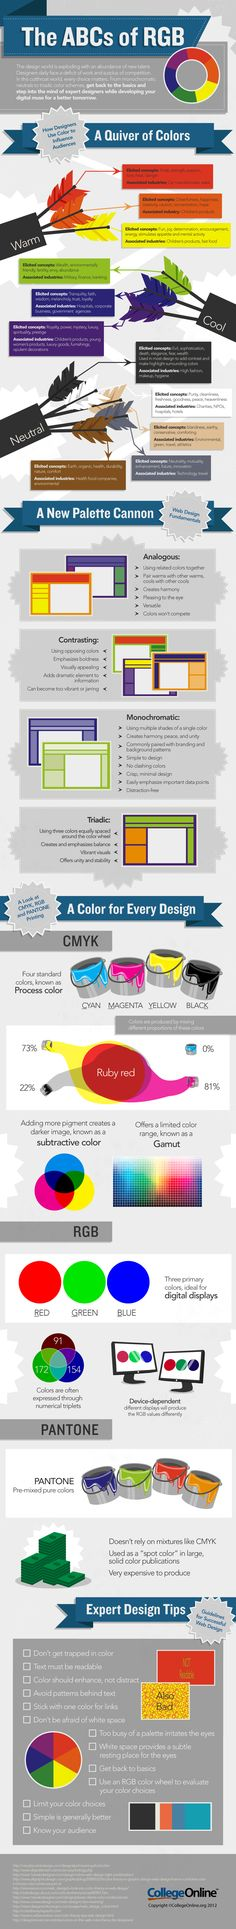 Color Theory and the Meaning Behind COLOR // Subscribe to vitaleads.com for #graphicdesign leads